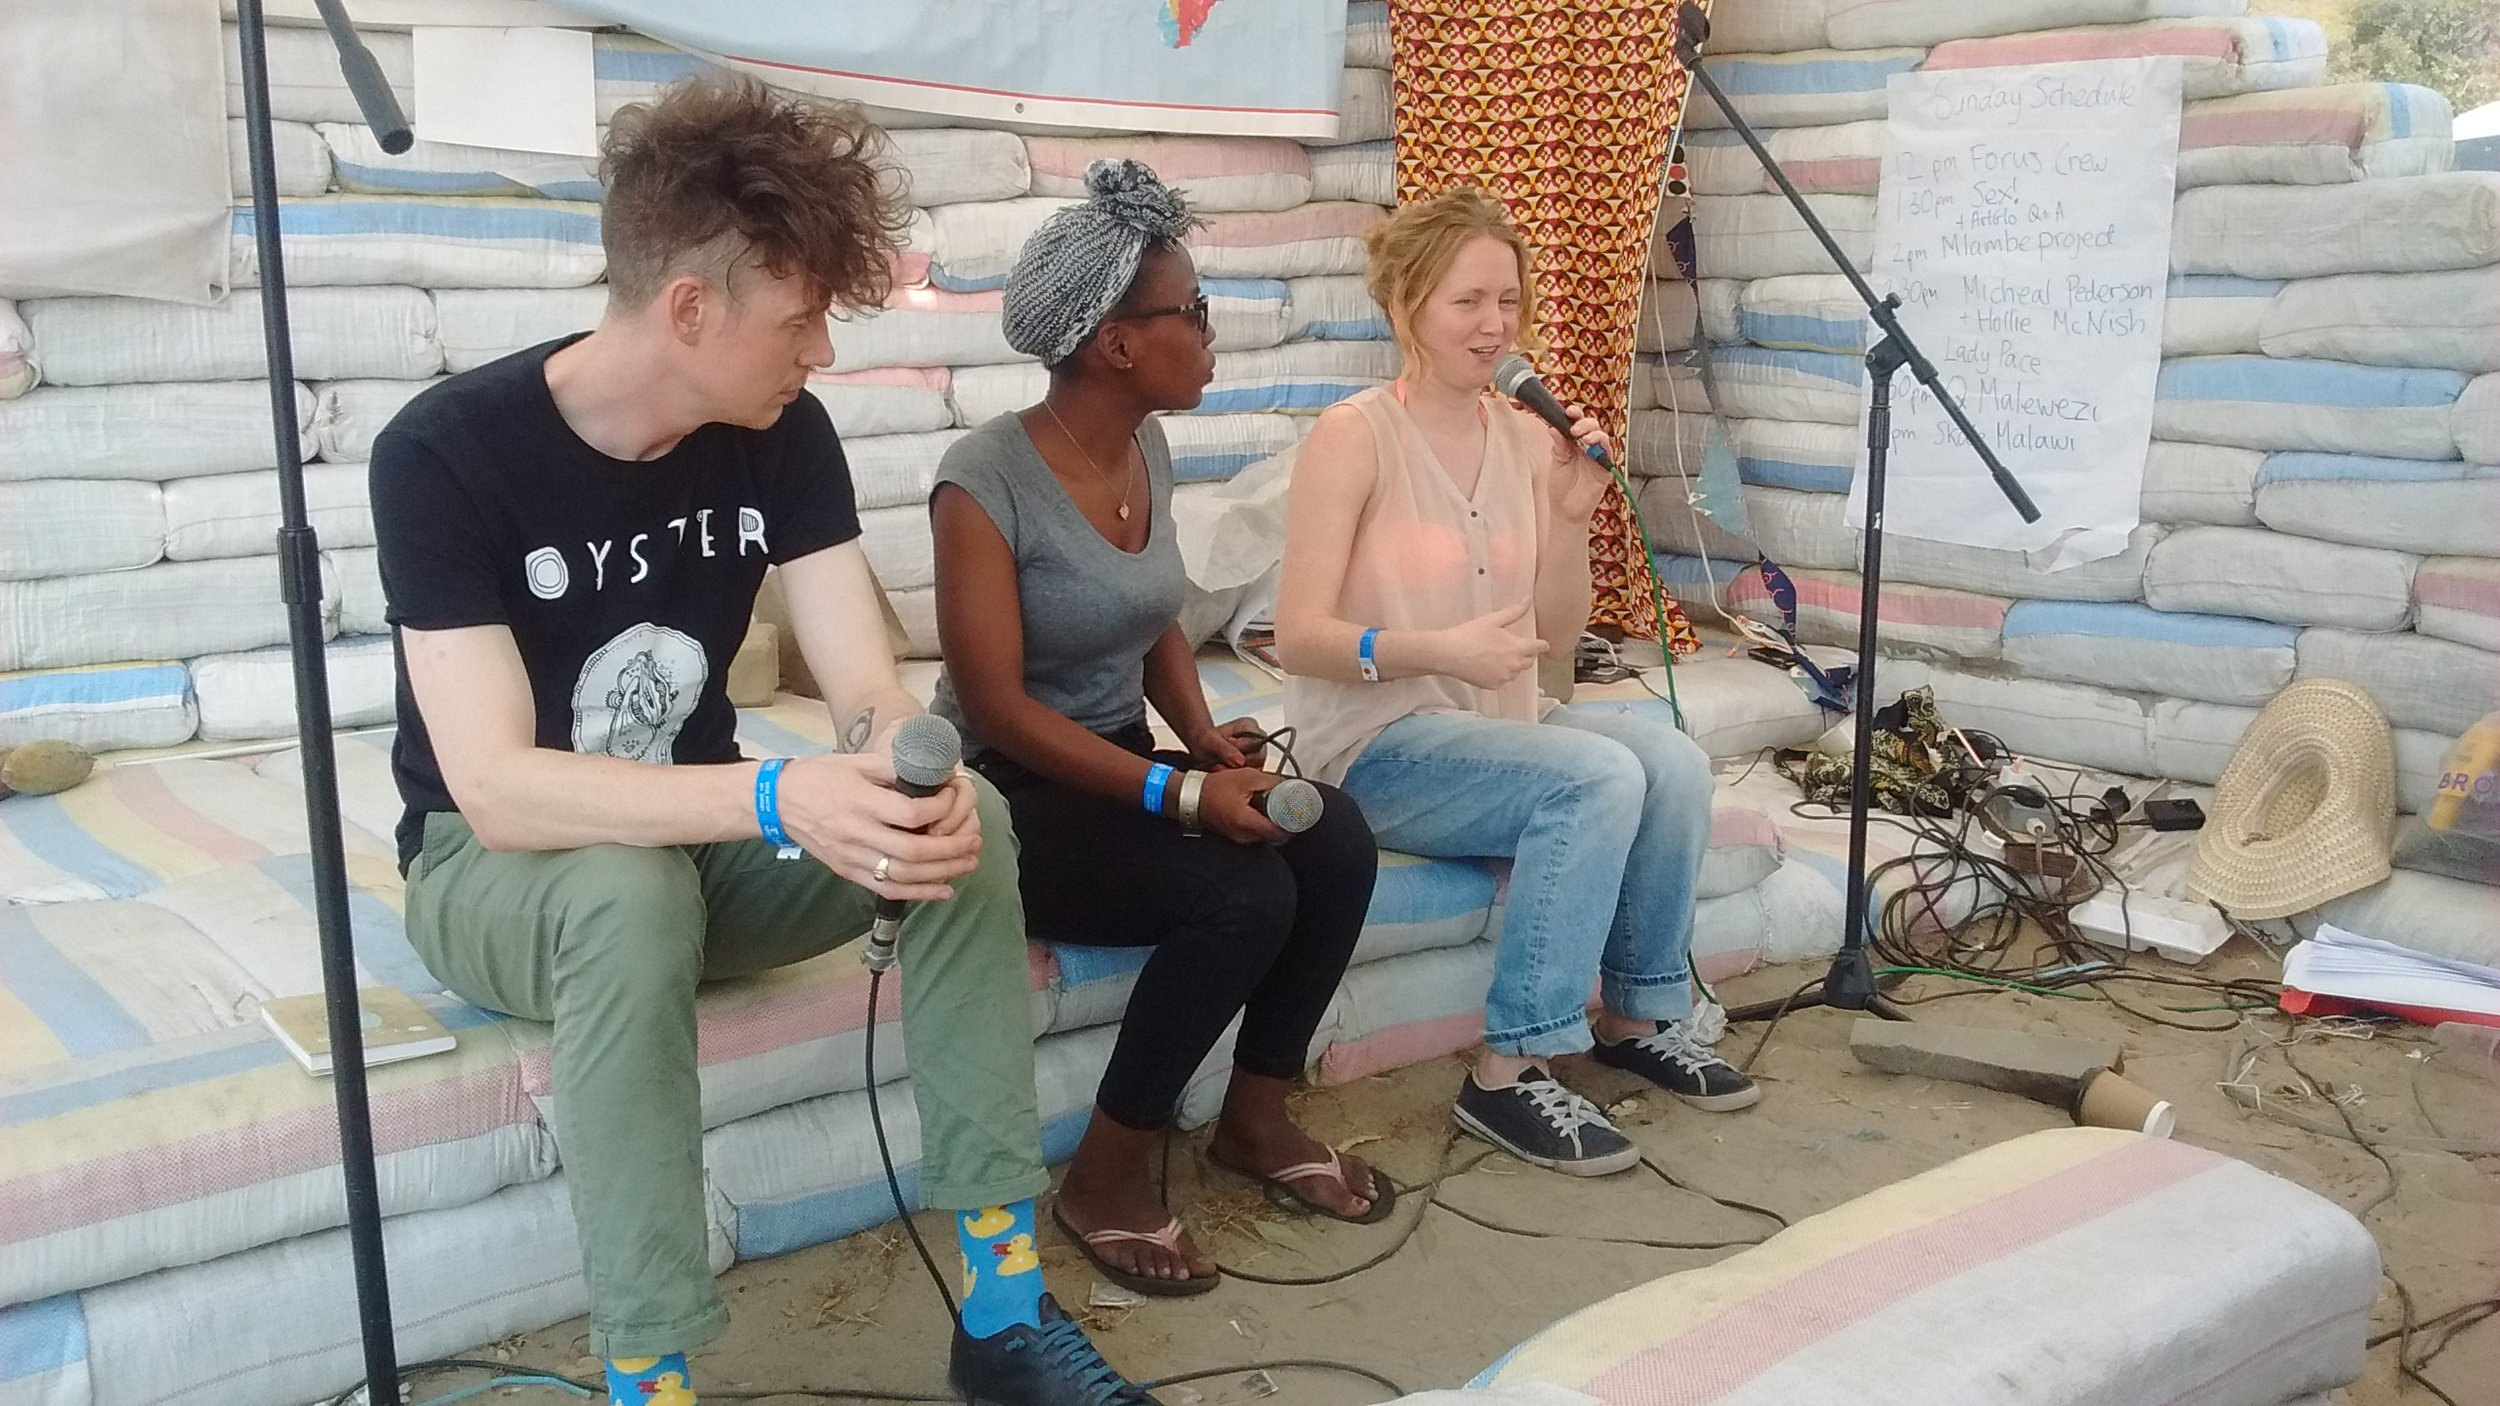 Scottish poets Michael Pedersen and Hollie McNish talked about their experience of creatively collaborating with Malawian artists.